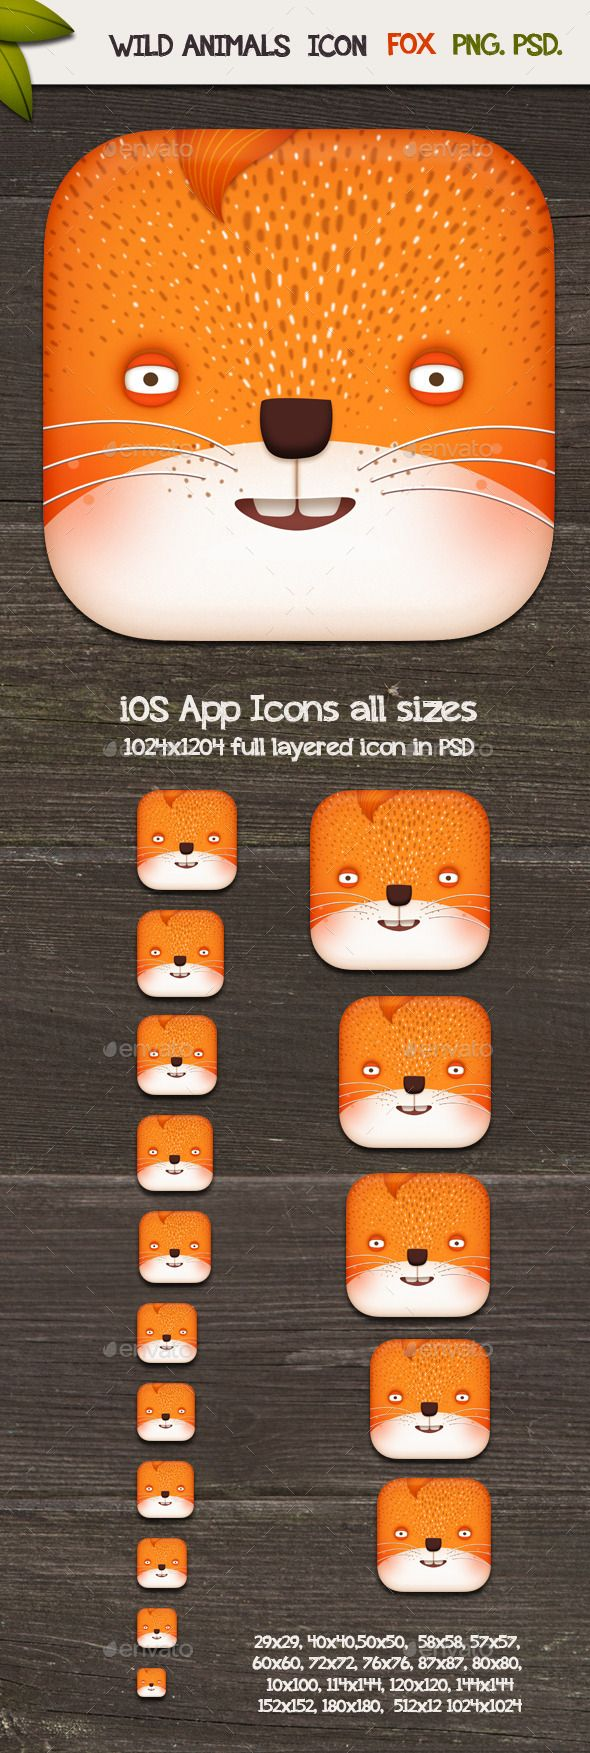 Wild animals Fox icon,A nice Icon for your next Application or Design. The Background of the Preview Image is not included. iOS Ap